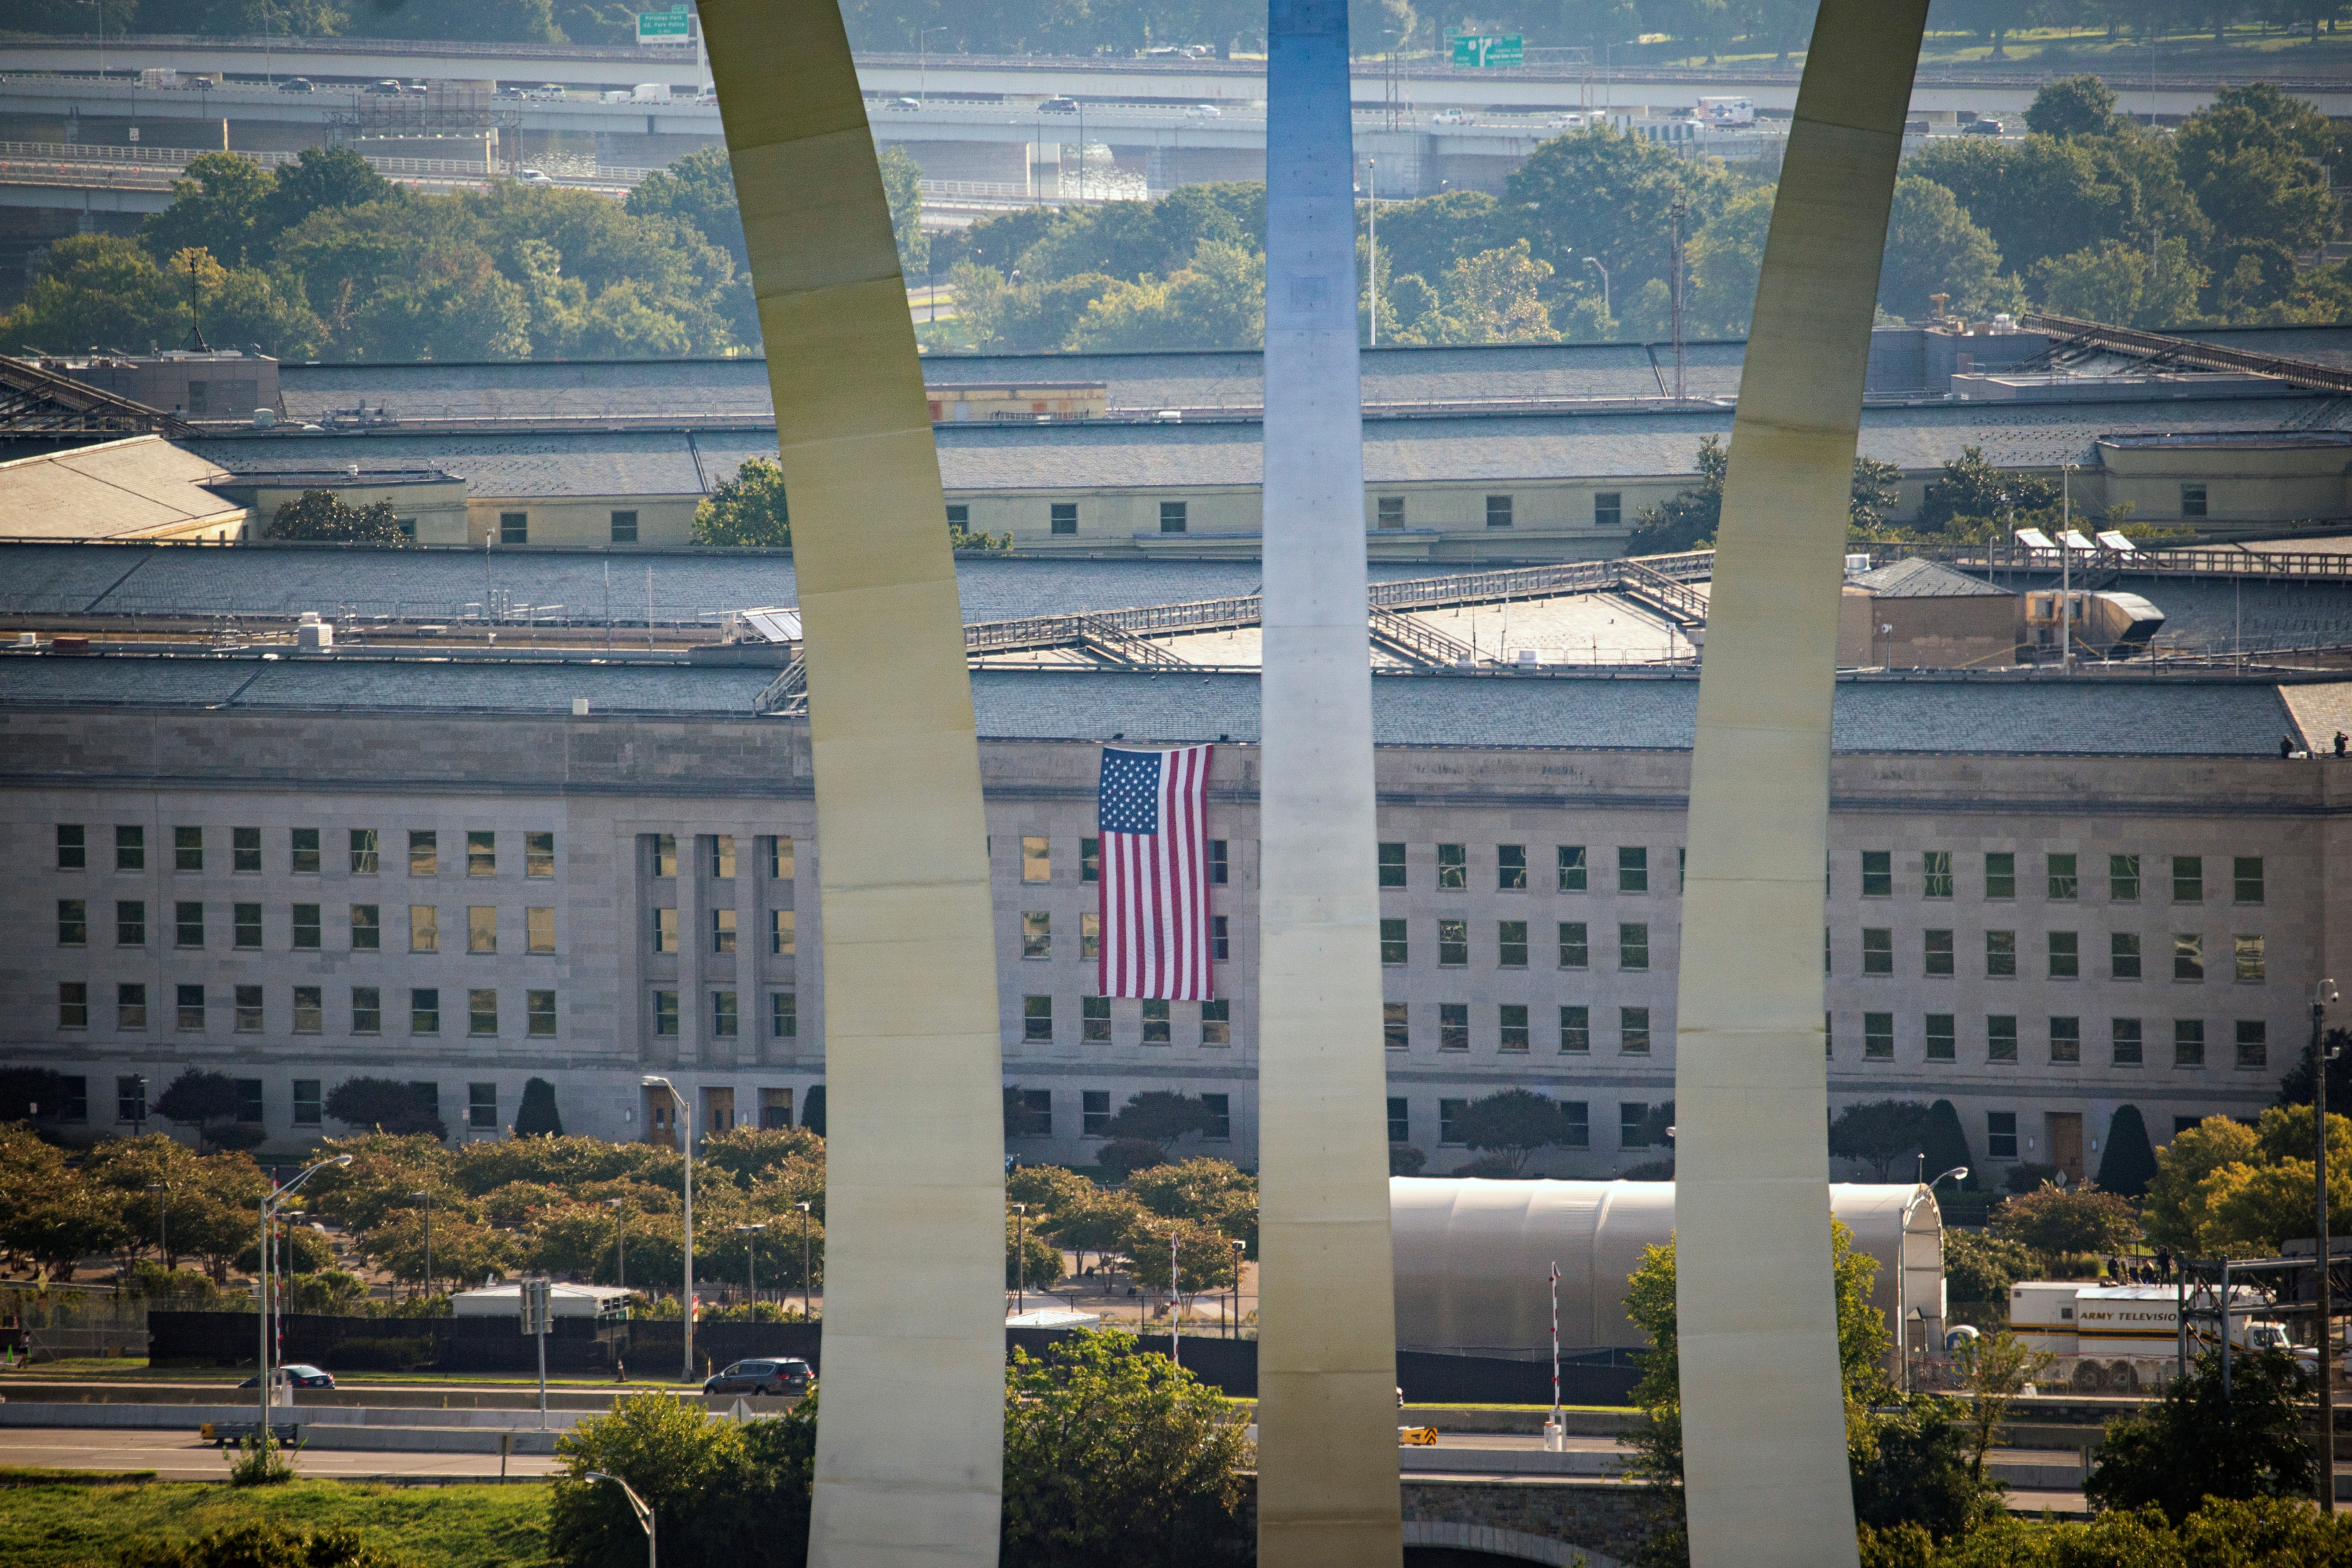 The U.S. Air Force Memorial is seen in the foreground as an American flag is unfurled from the roof of the Pentagon at the site where a jetliner hit the building, during ceremonies commemorating the 20th anniversary of the September 11, 2001 attacks in Arlington, Virginia, U.S., September 11, 2021. This photo was taken at 8.46am EDT on September 11, 2021, exactly 20 years after the first plane struck the North Tower of the World Trade Center in New York. REUTERS/Al Drago